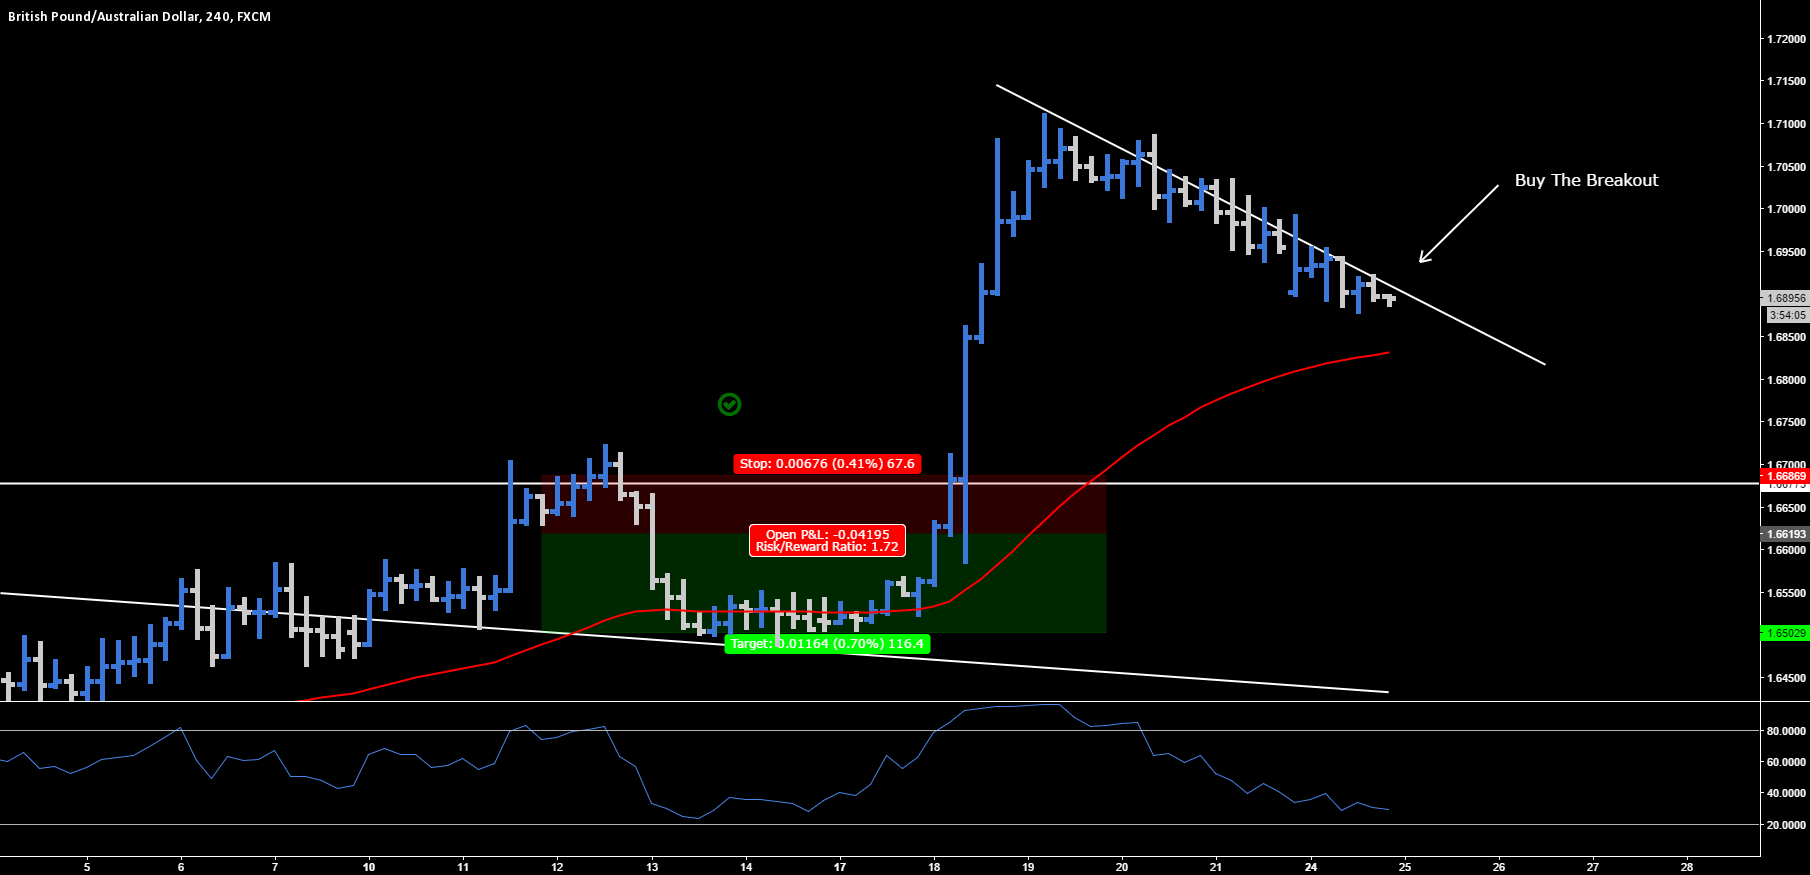 GBP.AUD - Buy The Breakout